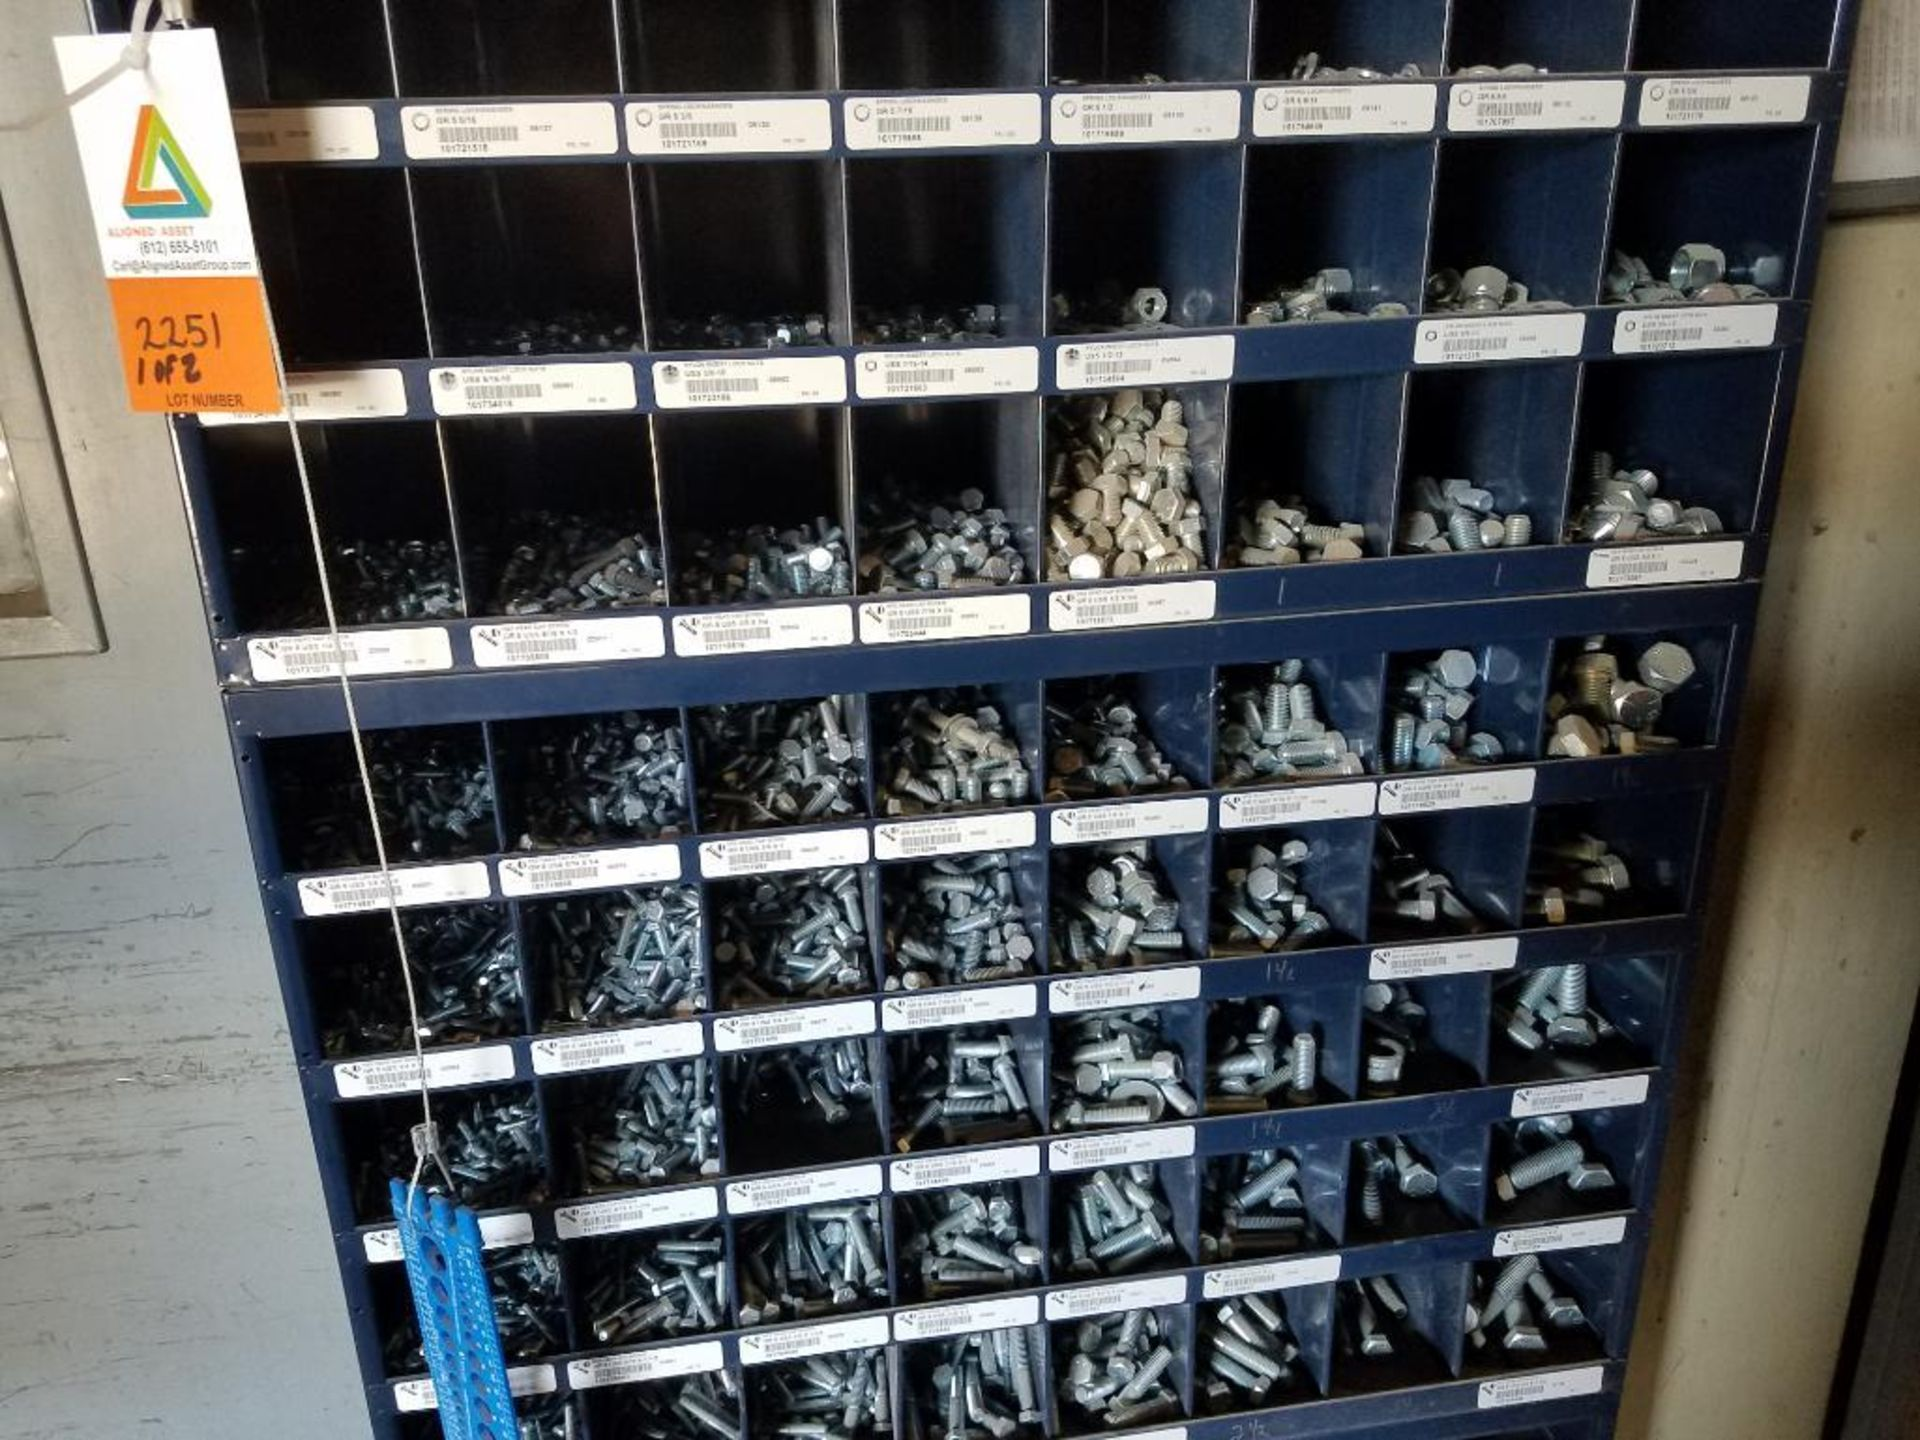 grade 5 nut and bolt bins - Image 3 of 4